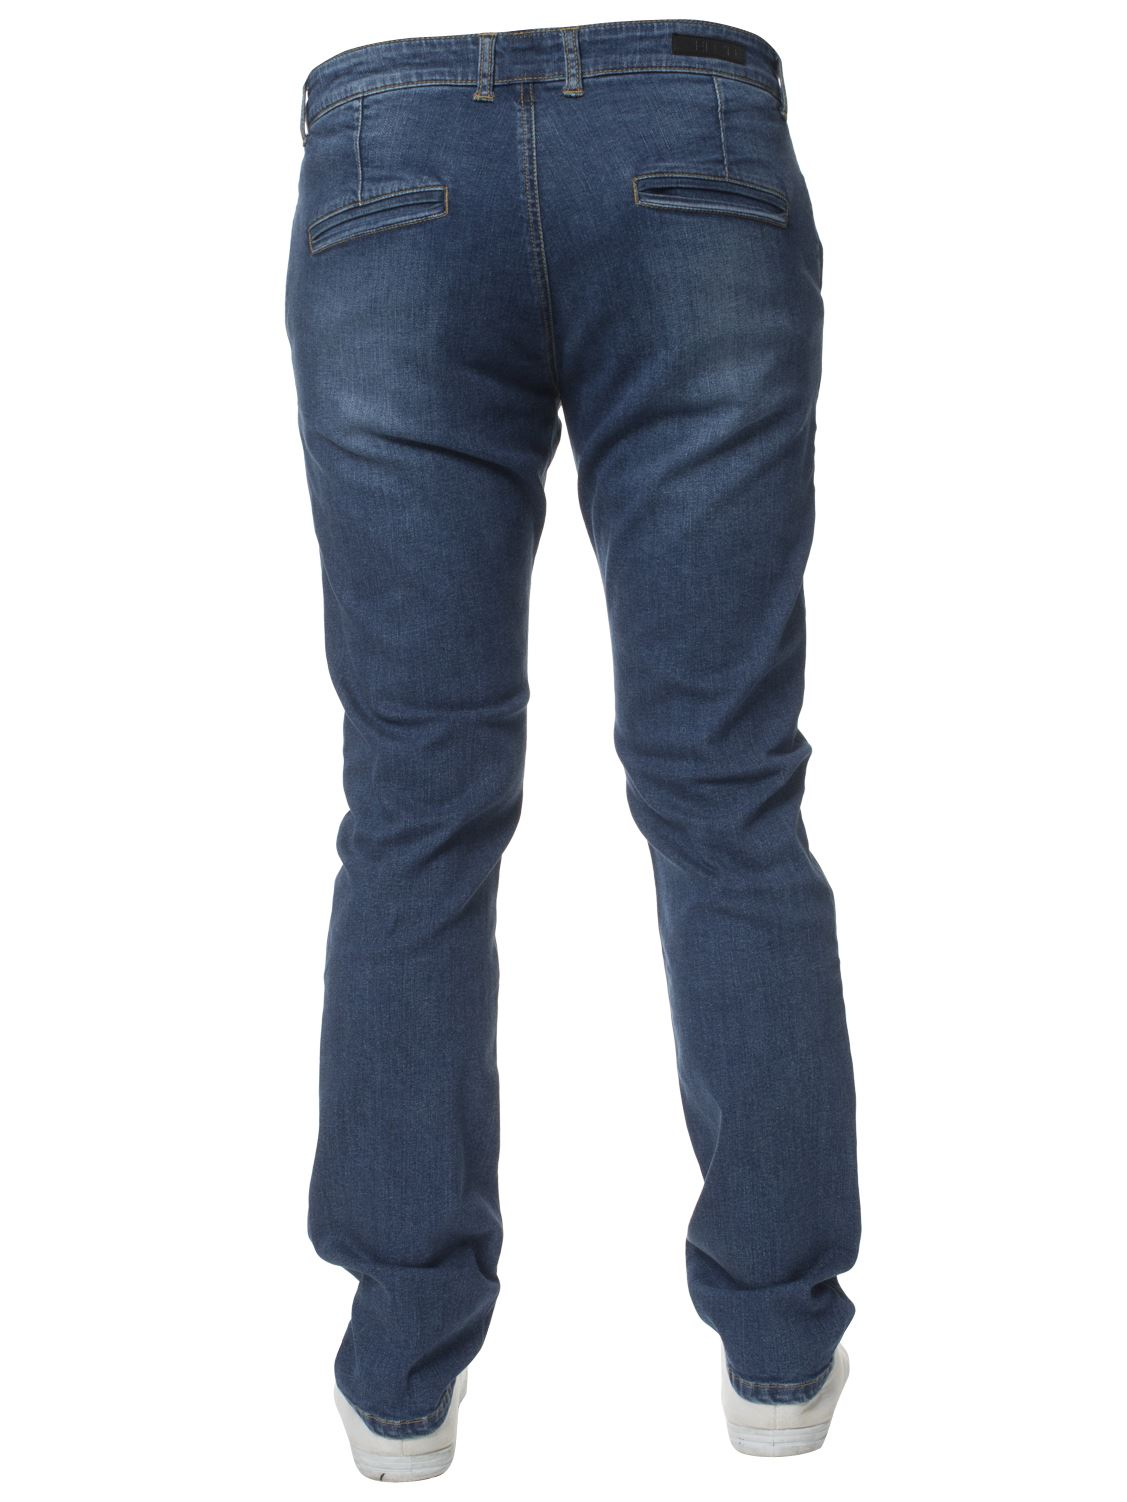 New-Mens-Enzo-Jeans-Denim-Chinos-Skinny-Slim-Fit-Super-Stretch-Trousers-Pants thumbnail 6